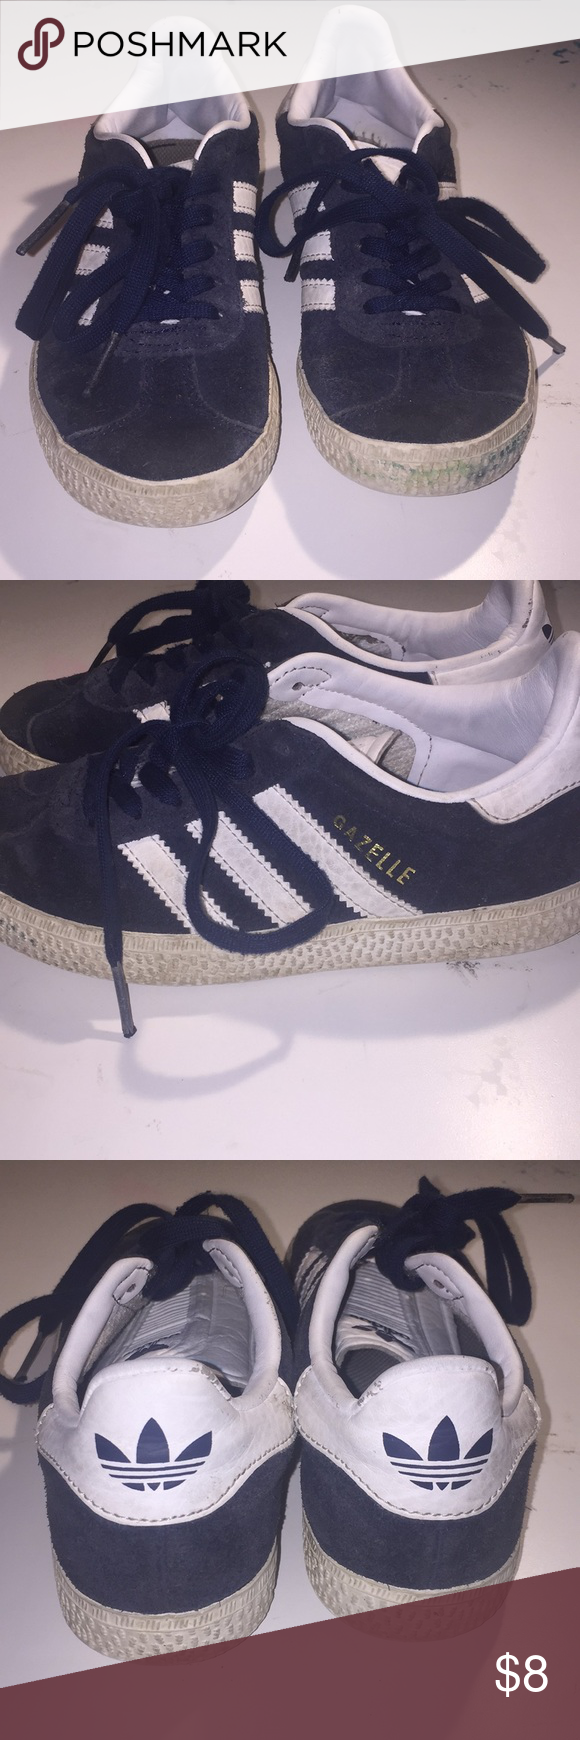 7da200dc48441 Adidas Gazelle Kids sneakers Adidas Gazelle Kids sneakers Size  11 Suede  material Wear and Tear as seen in pictures Missing inside sole pad in left  shoe ...